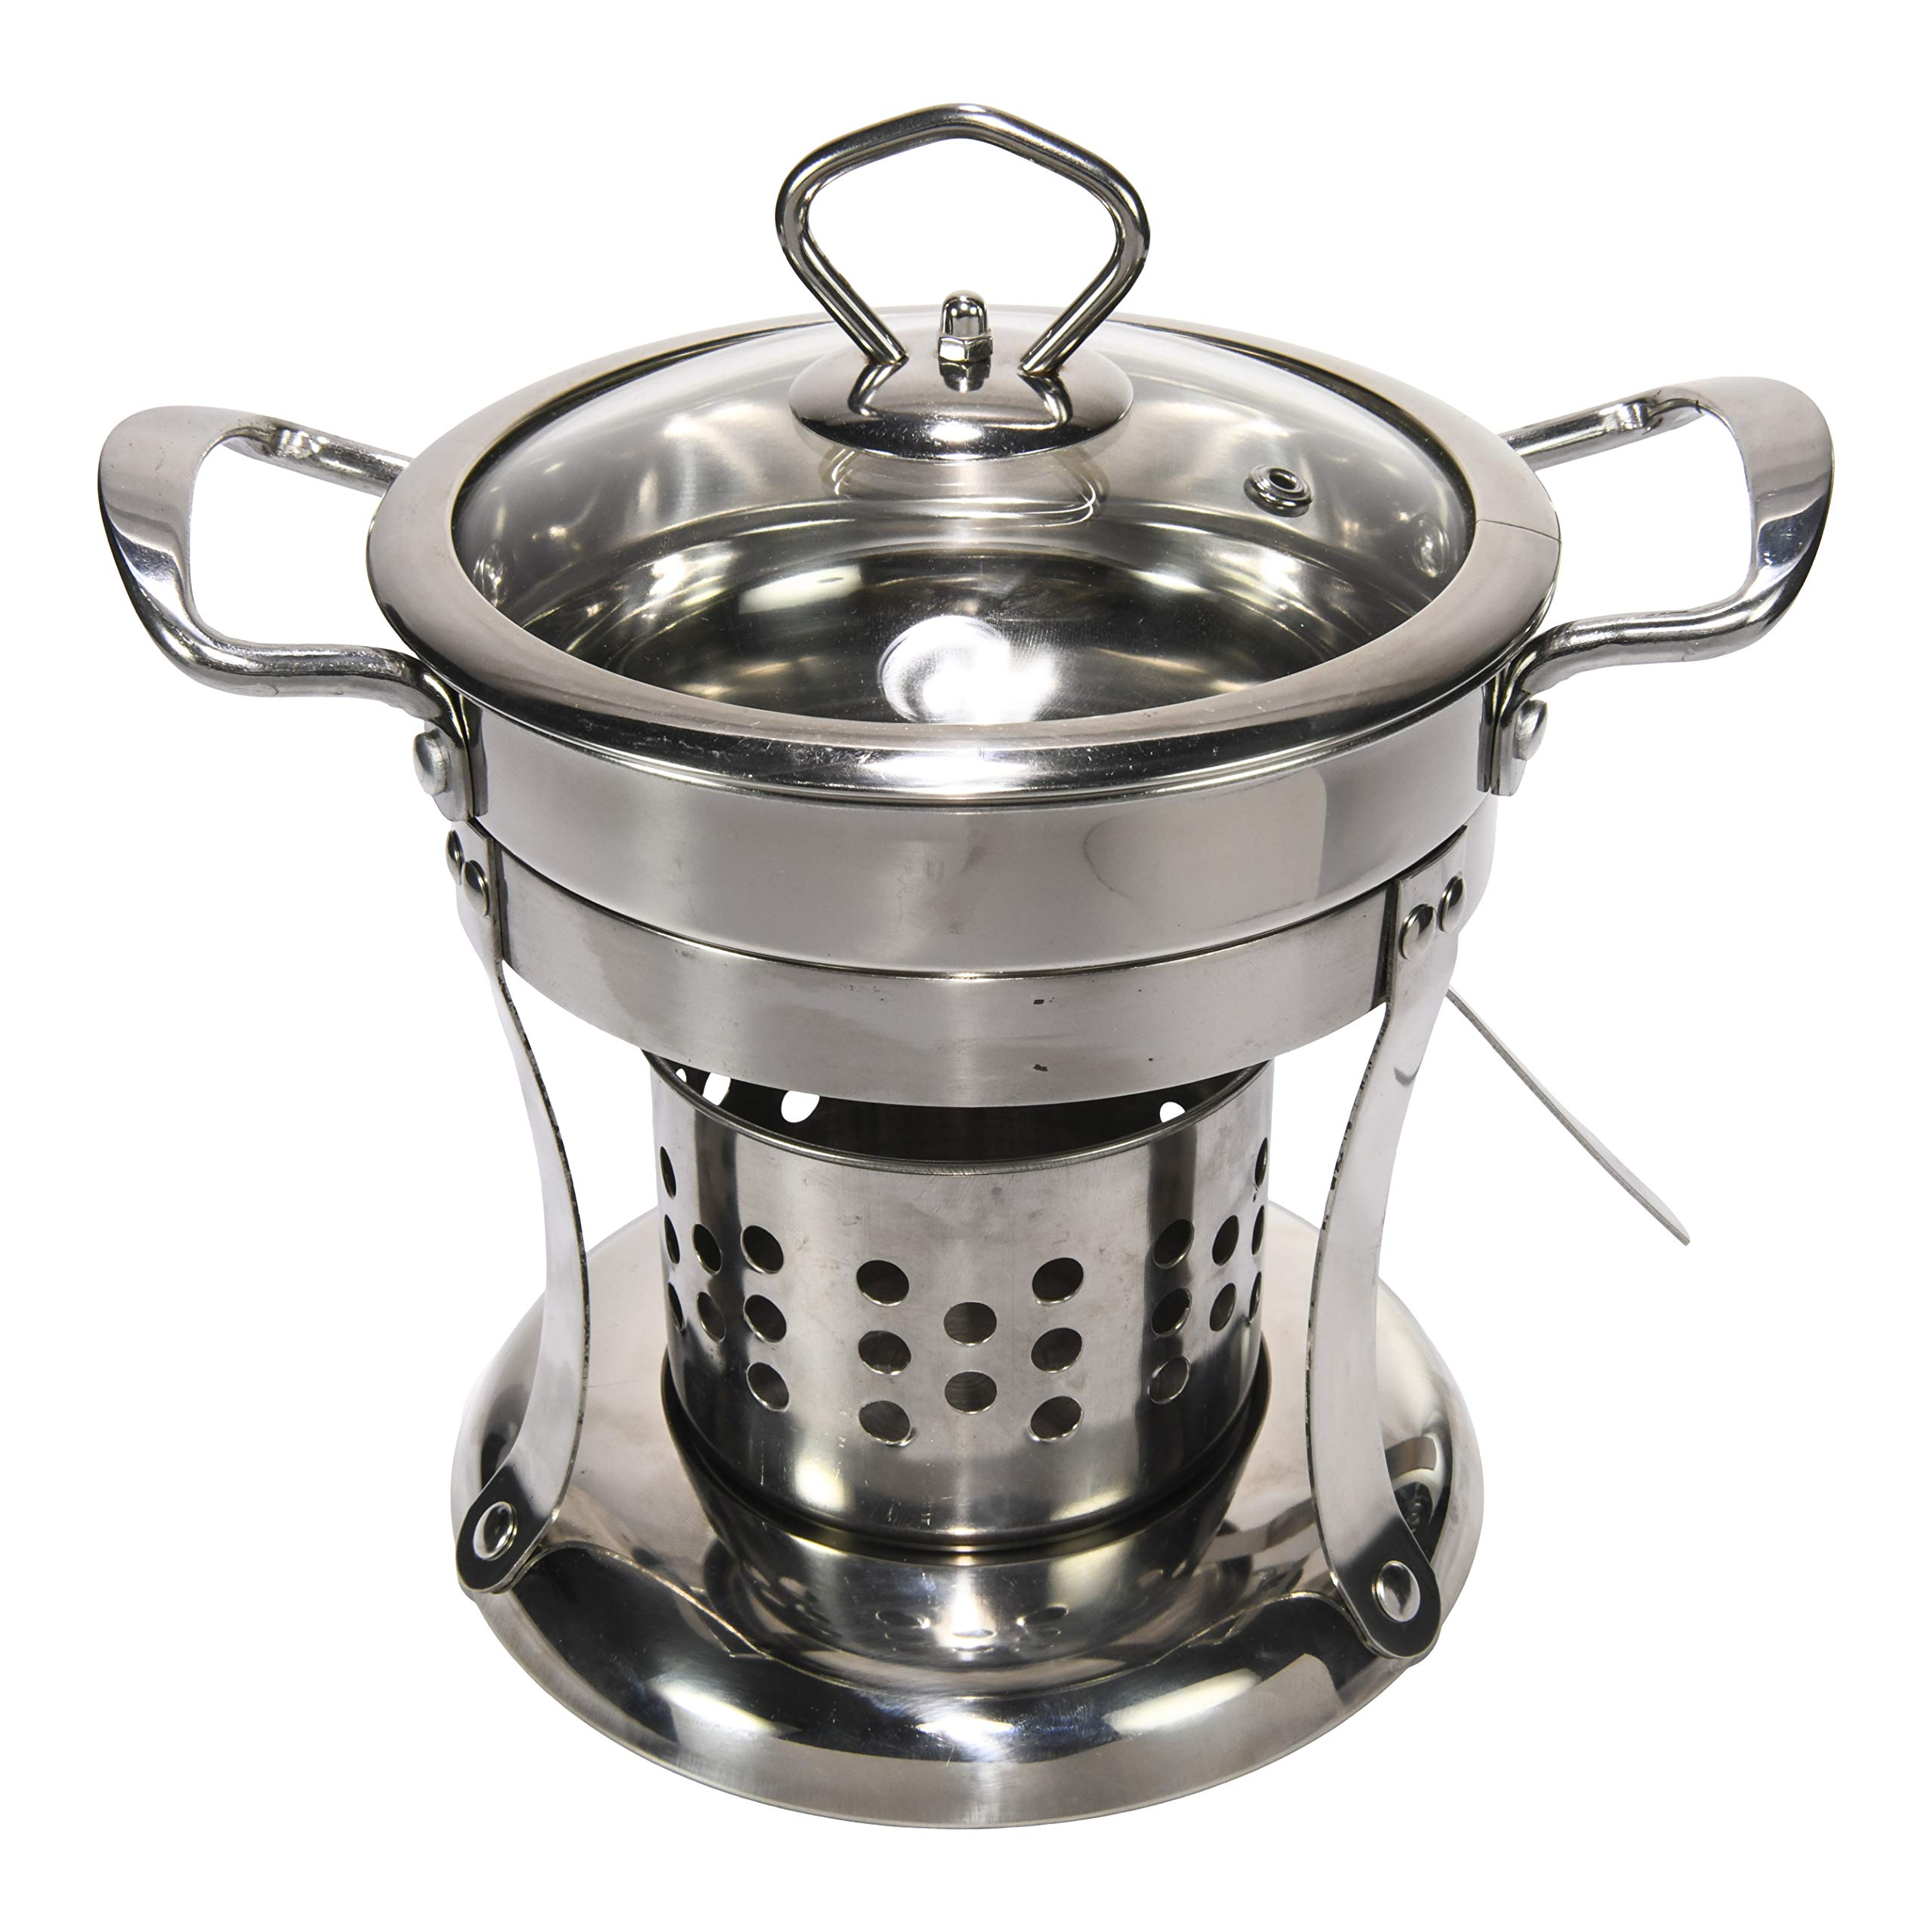 Hot Pot & Shabu Shabu Pot Cooker. Individual Hot Pots Great for Entertaining and for Personalizing your own Chinese Hot Pot at Home. Set of 2. by PartiPot